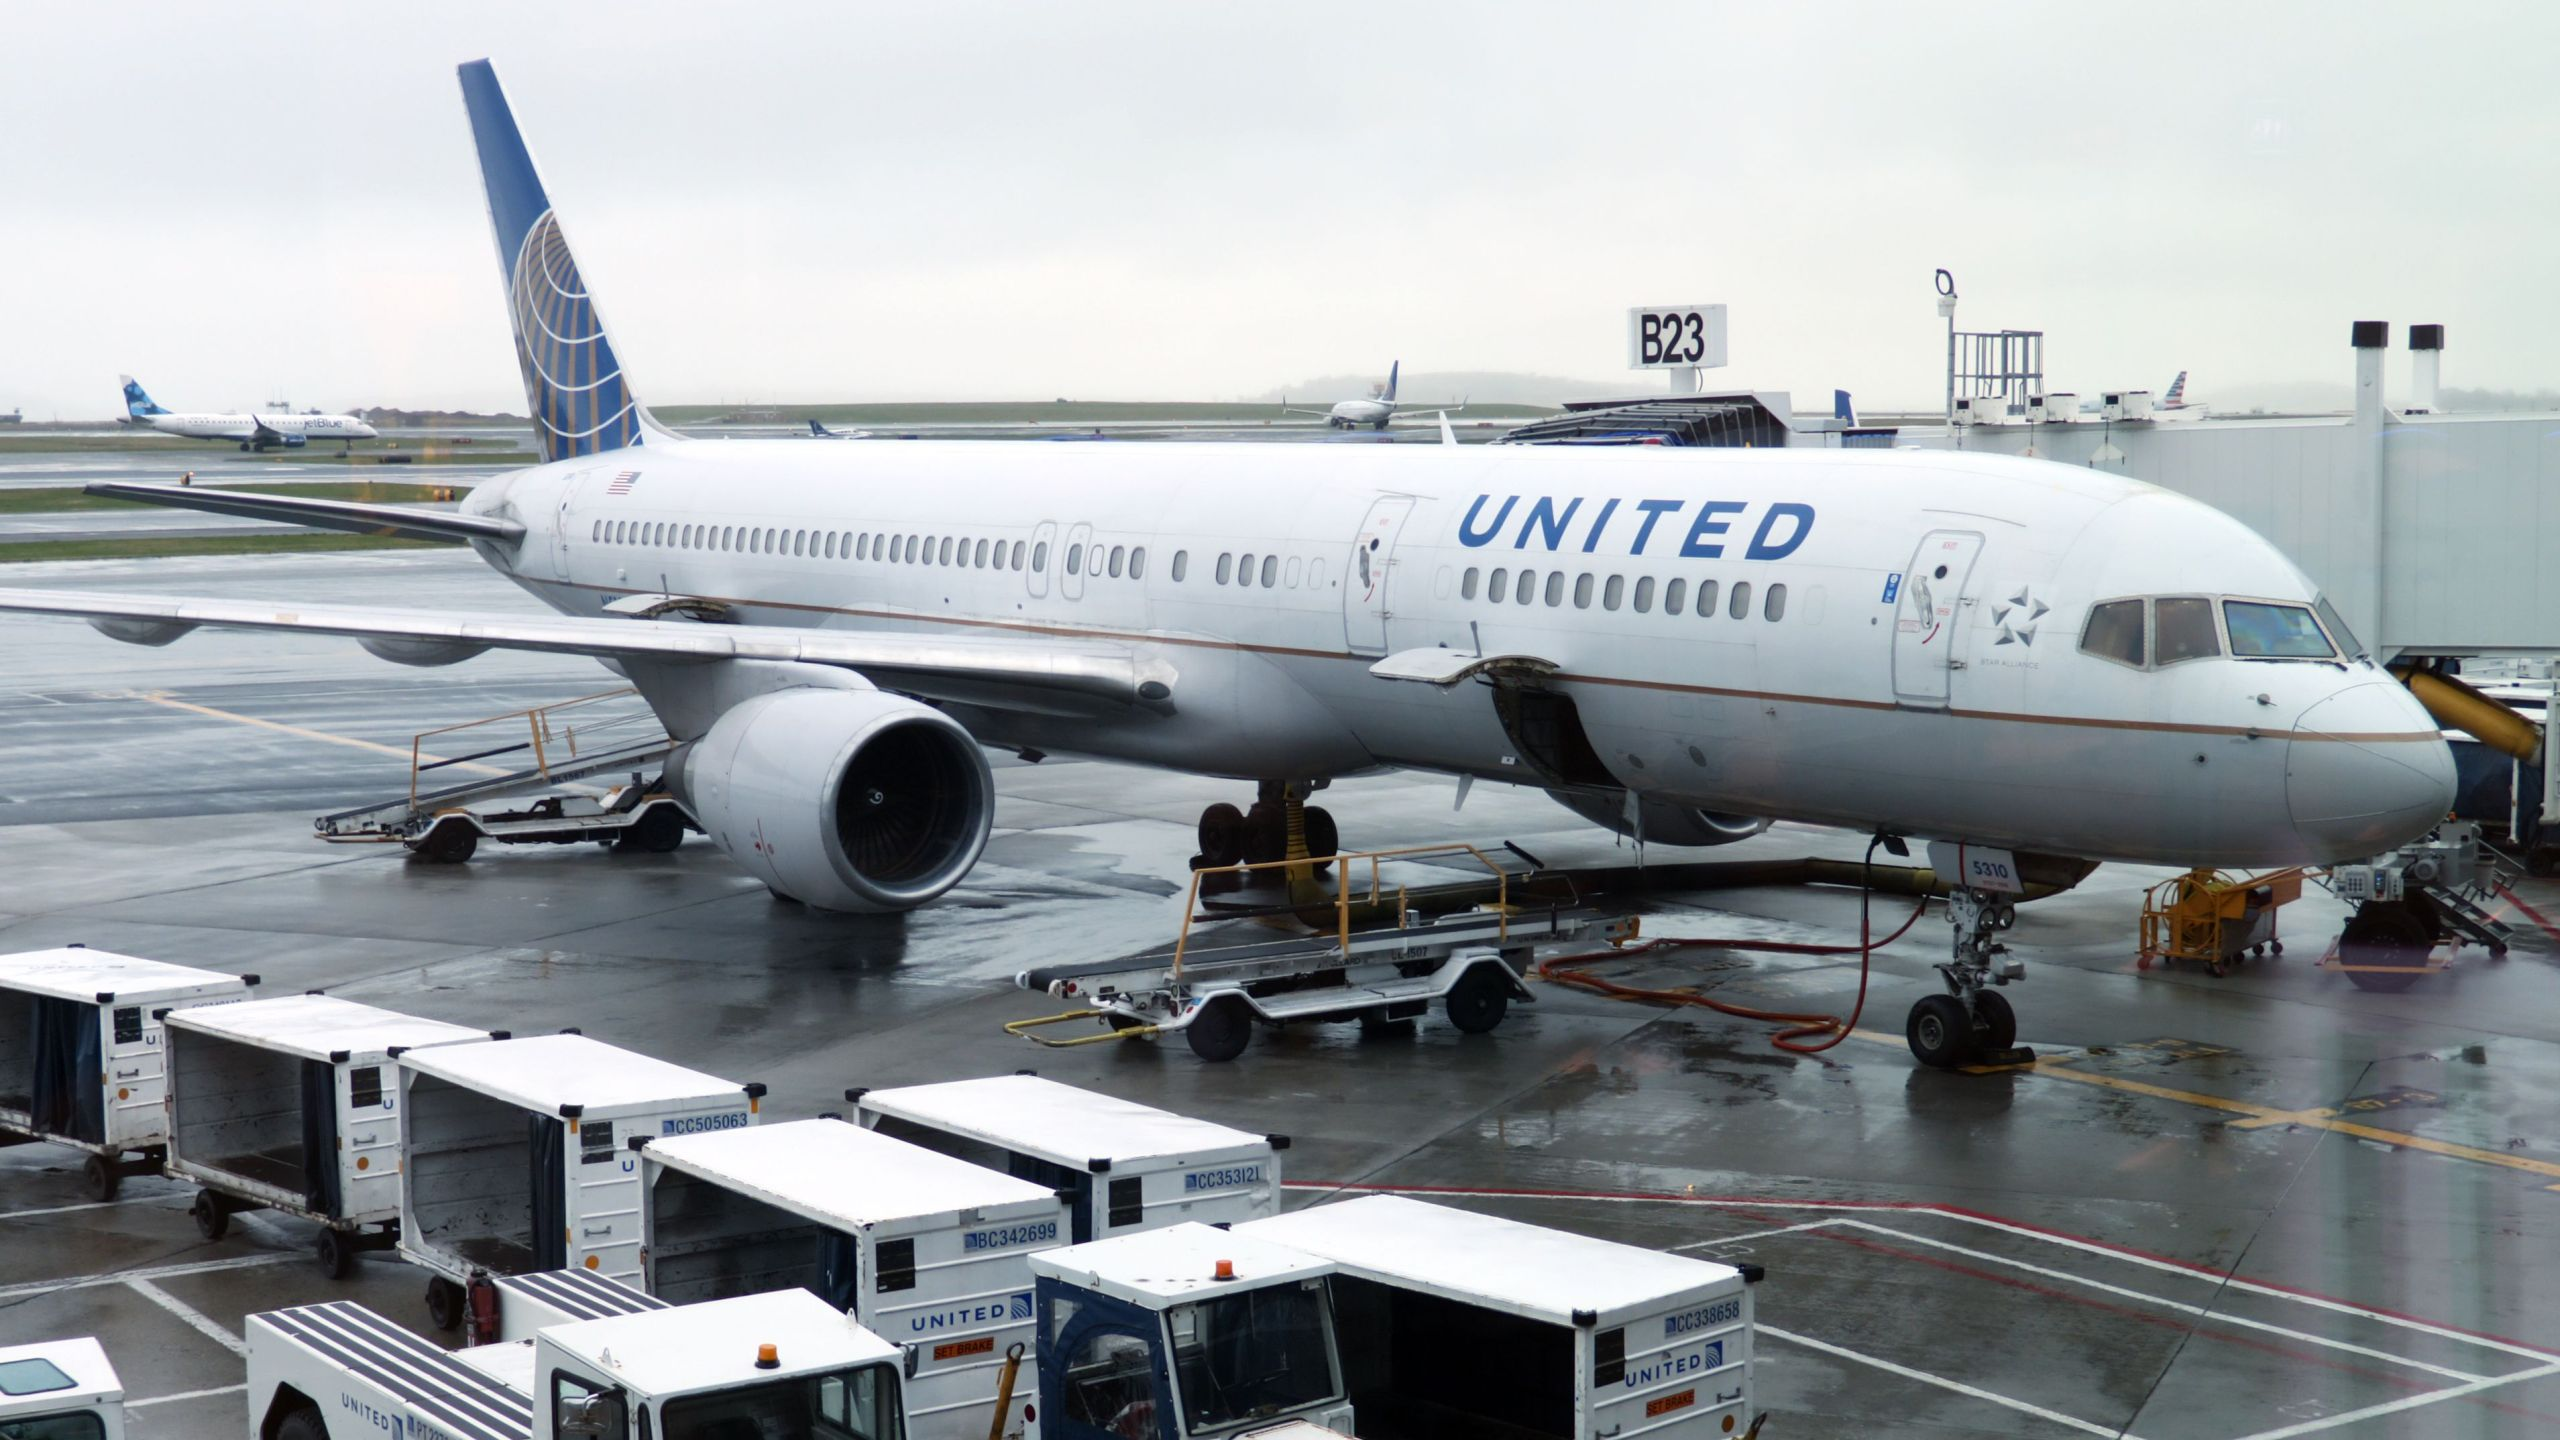 A United Airlines plane is parked at the gate on April 23, 2019, at Boston Logan International Airport. (Credit: Daniel Slim/AFP/Getty Images)